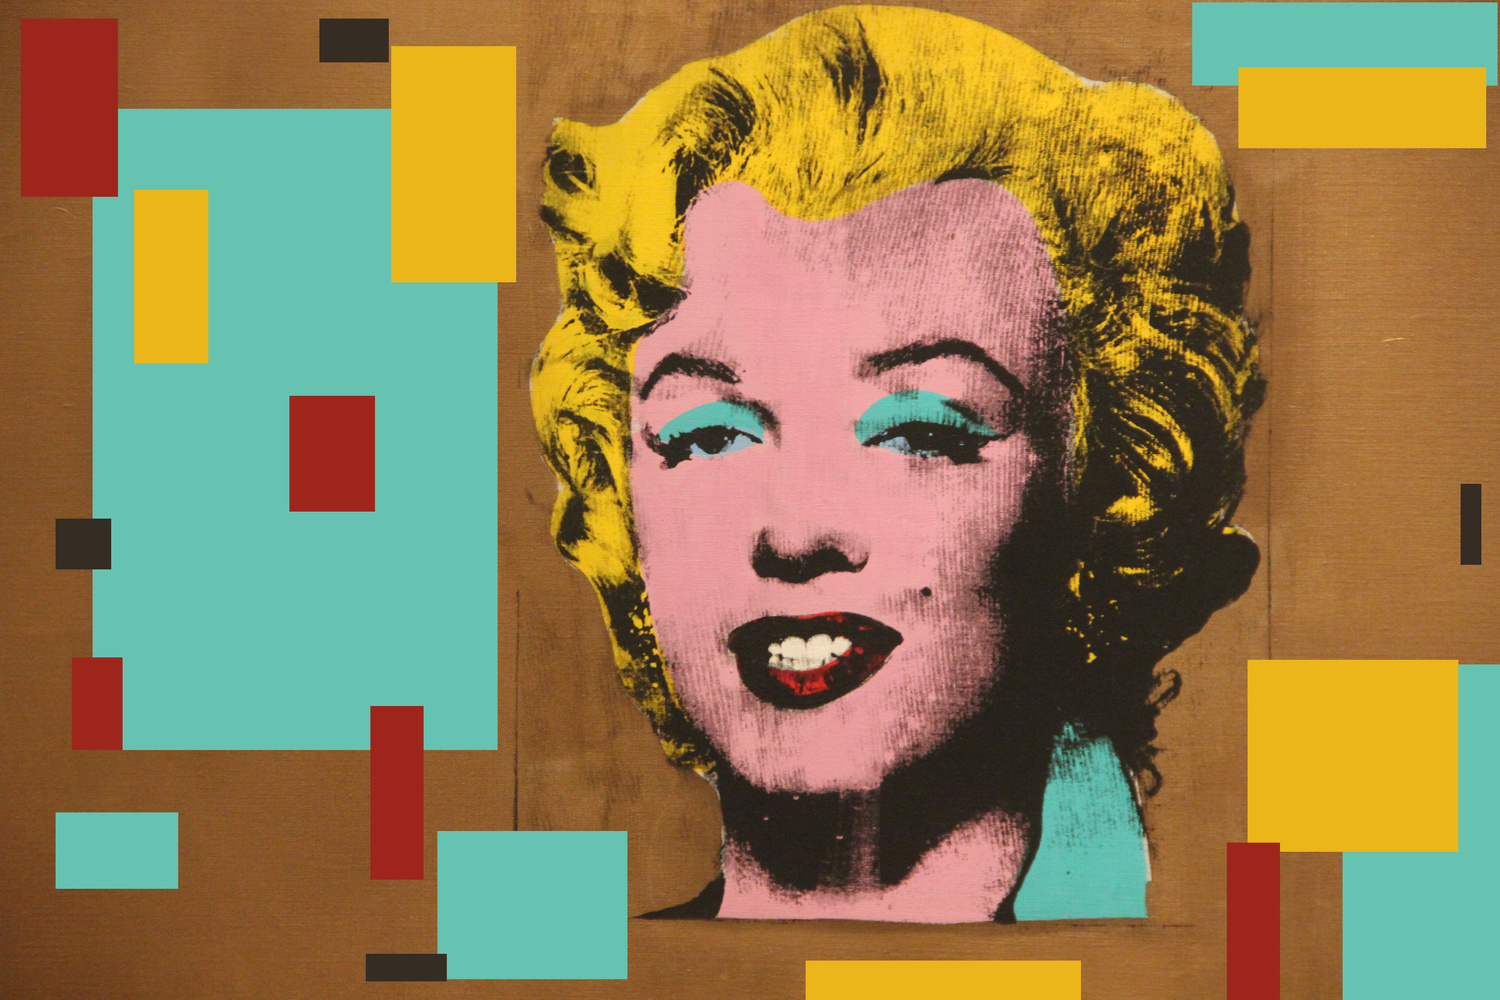 Andy warhol bodley gallery 5 Fabulous Fall Color Palettes! The Perfect Palette